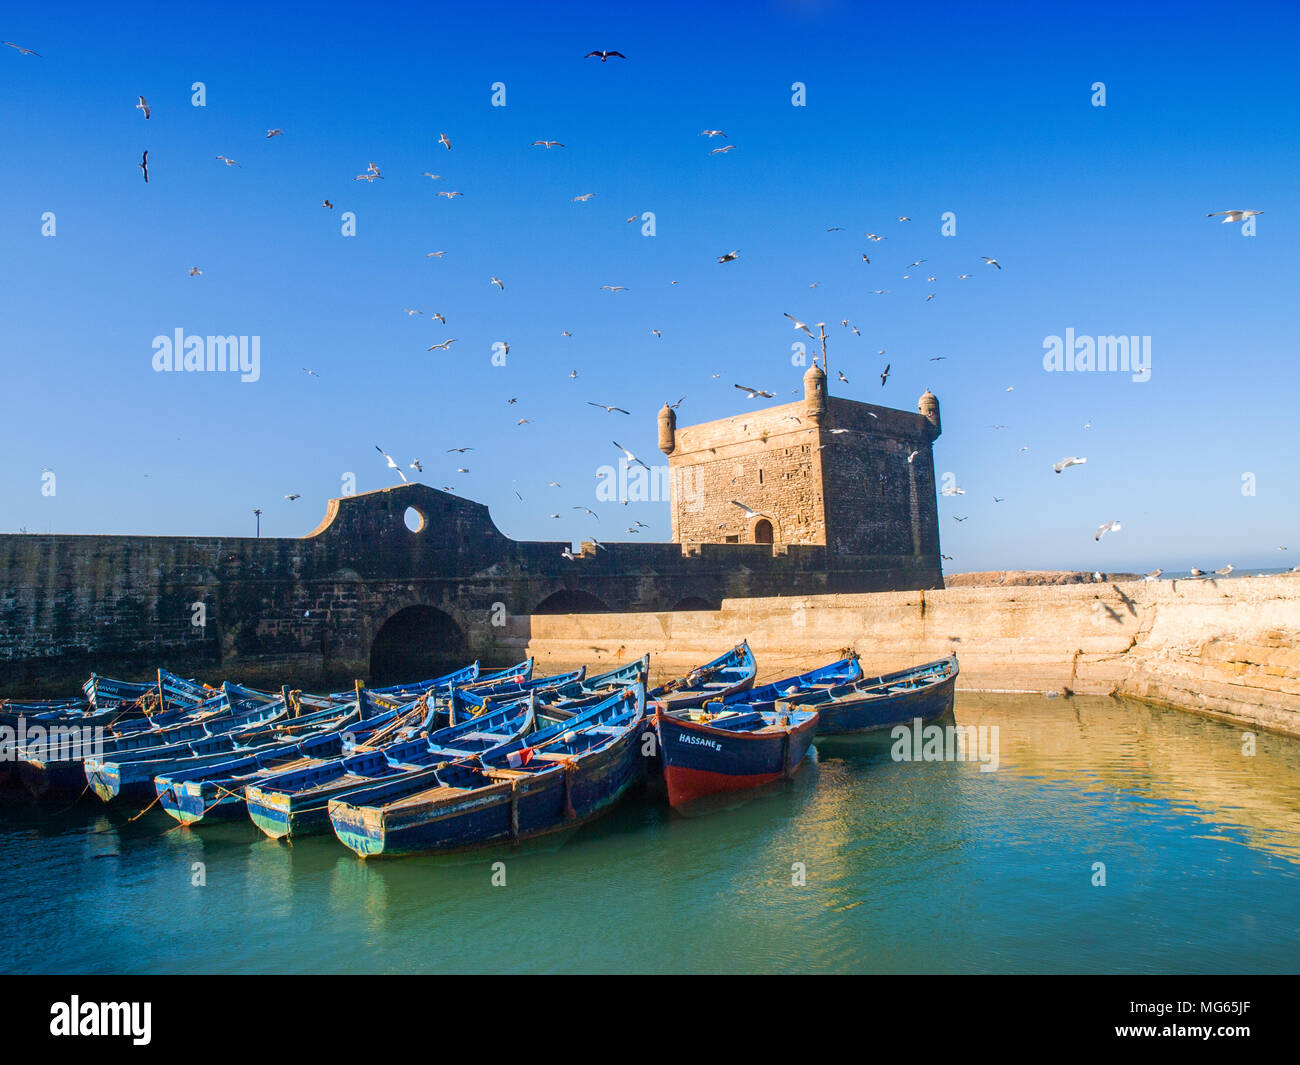 The bastion in the walled town of Essaouira, Morocco Stock Photo